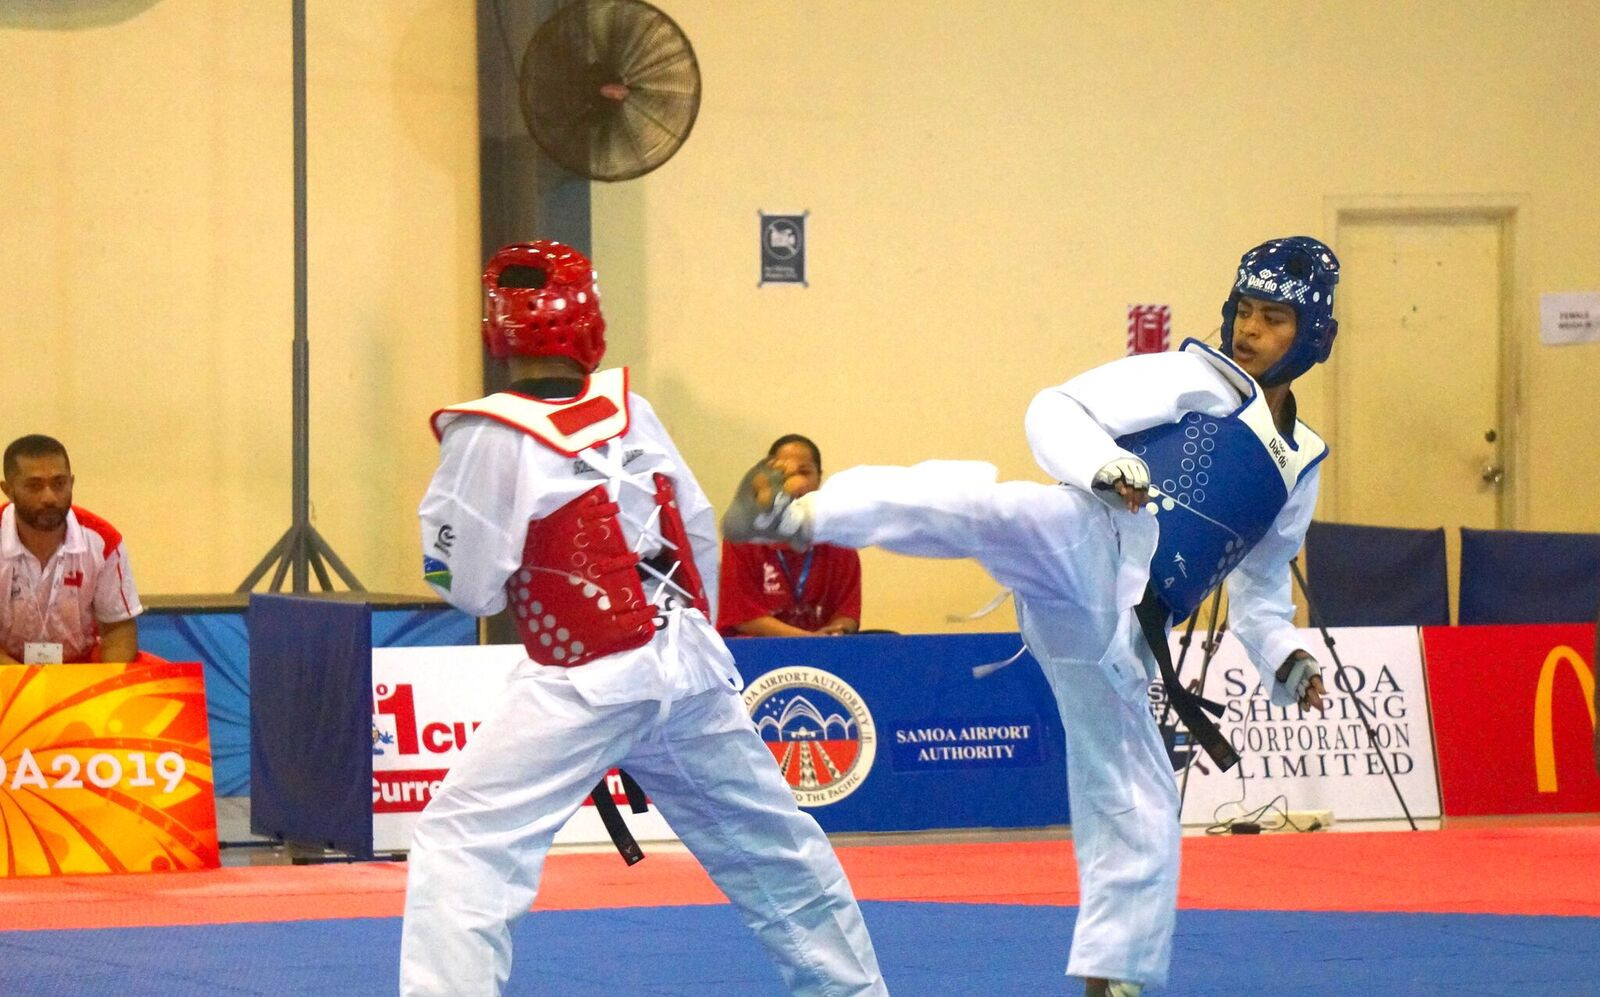 Australia won five of the six gold medals on offer on the first day of competition in the taekwondo at the 2019 Pacific Games ©Games News Service